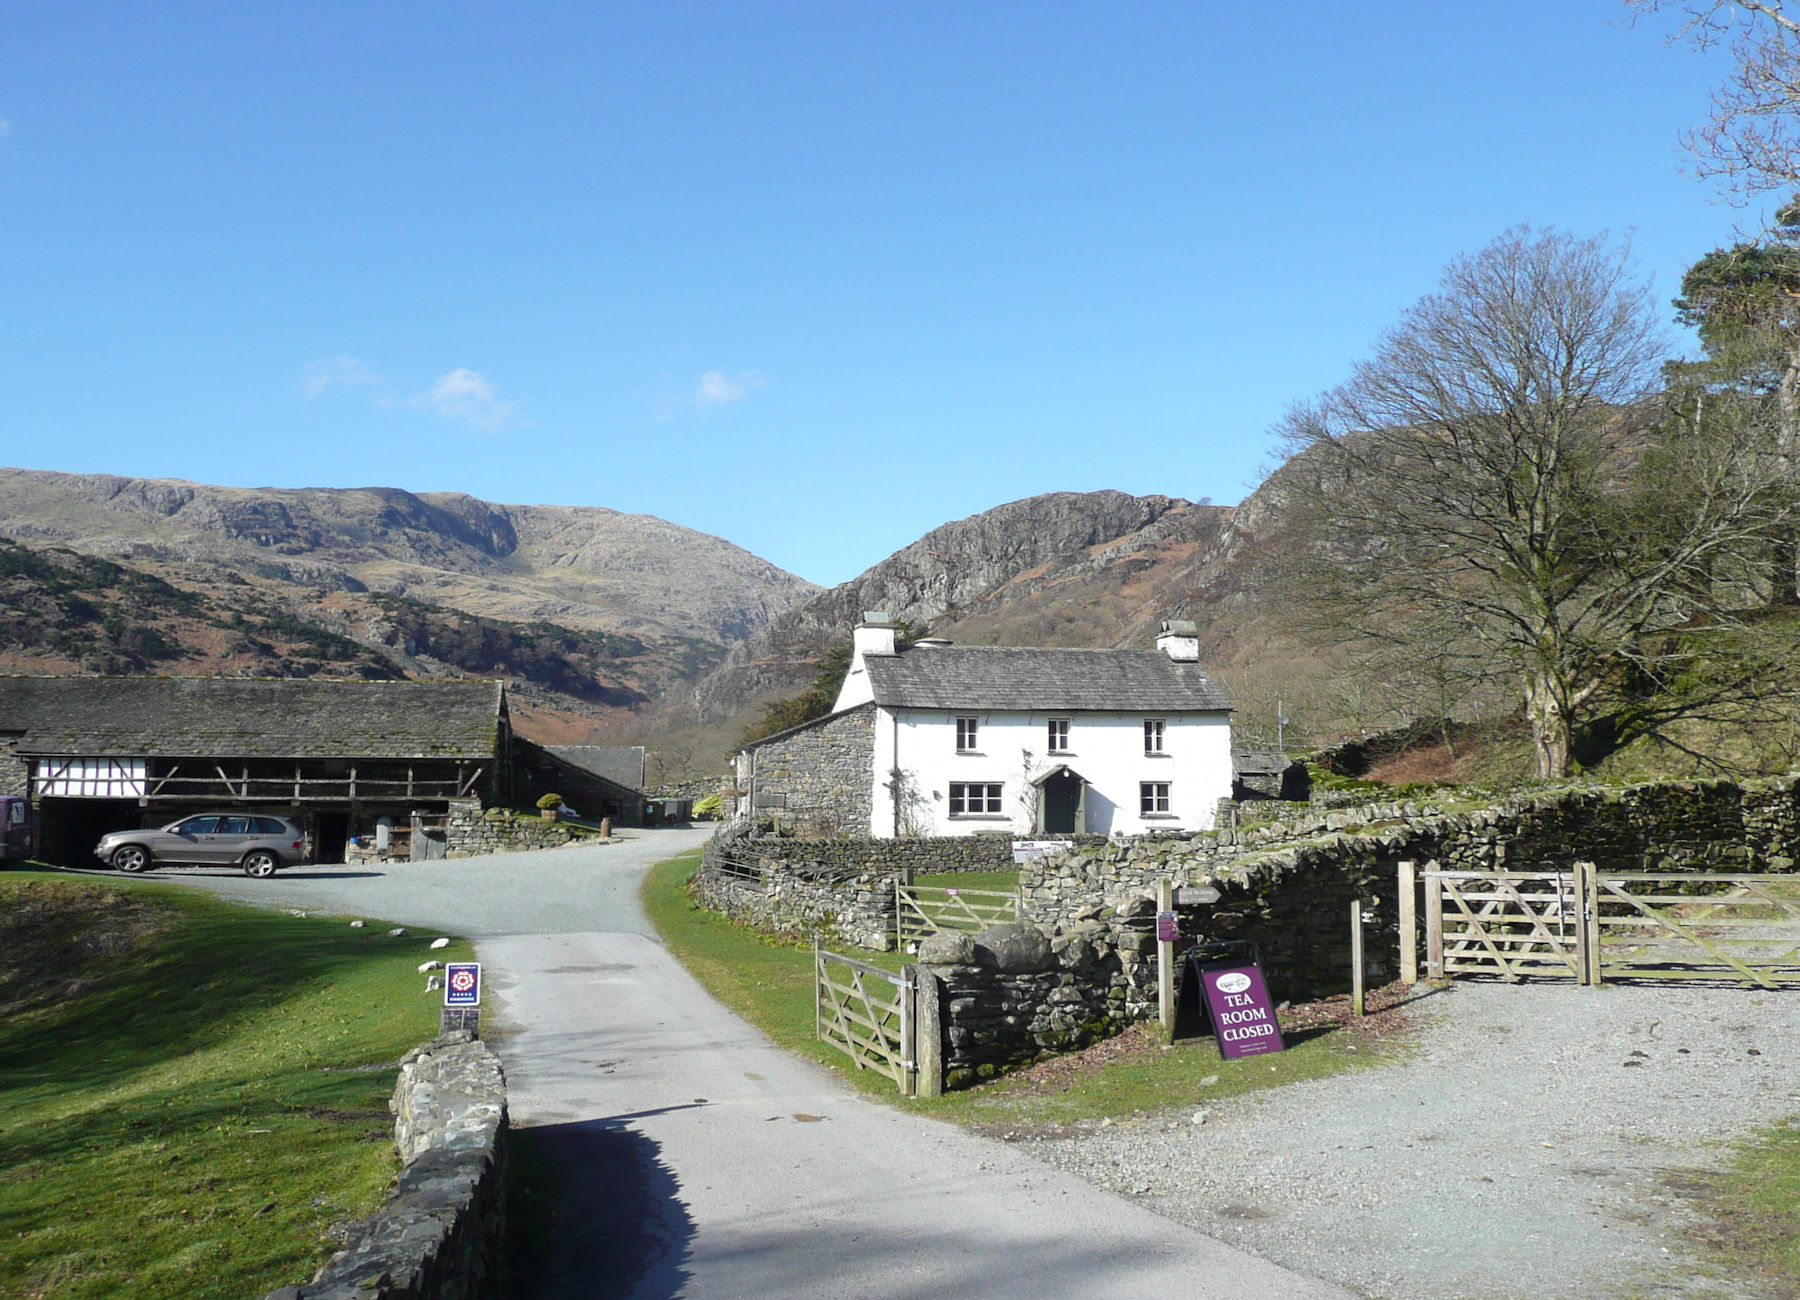 Yew Tree Cottage and Wetherlam